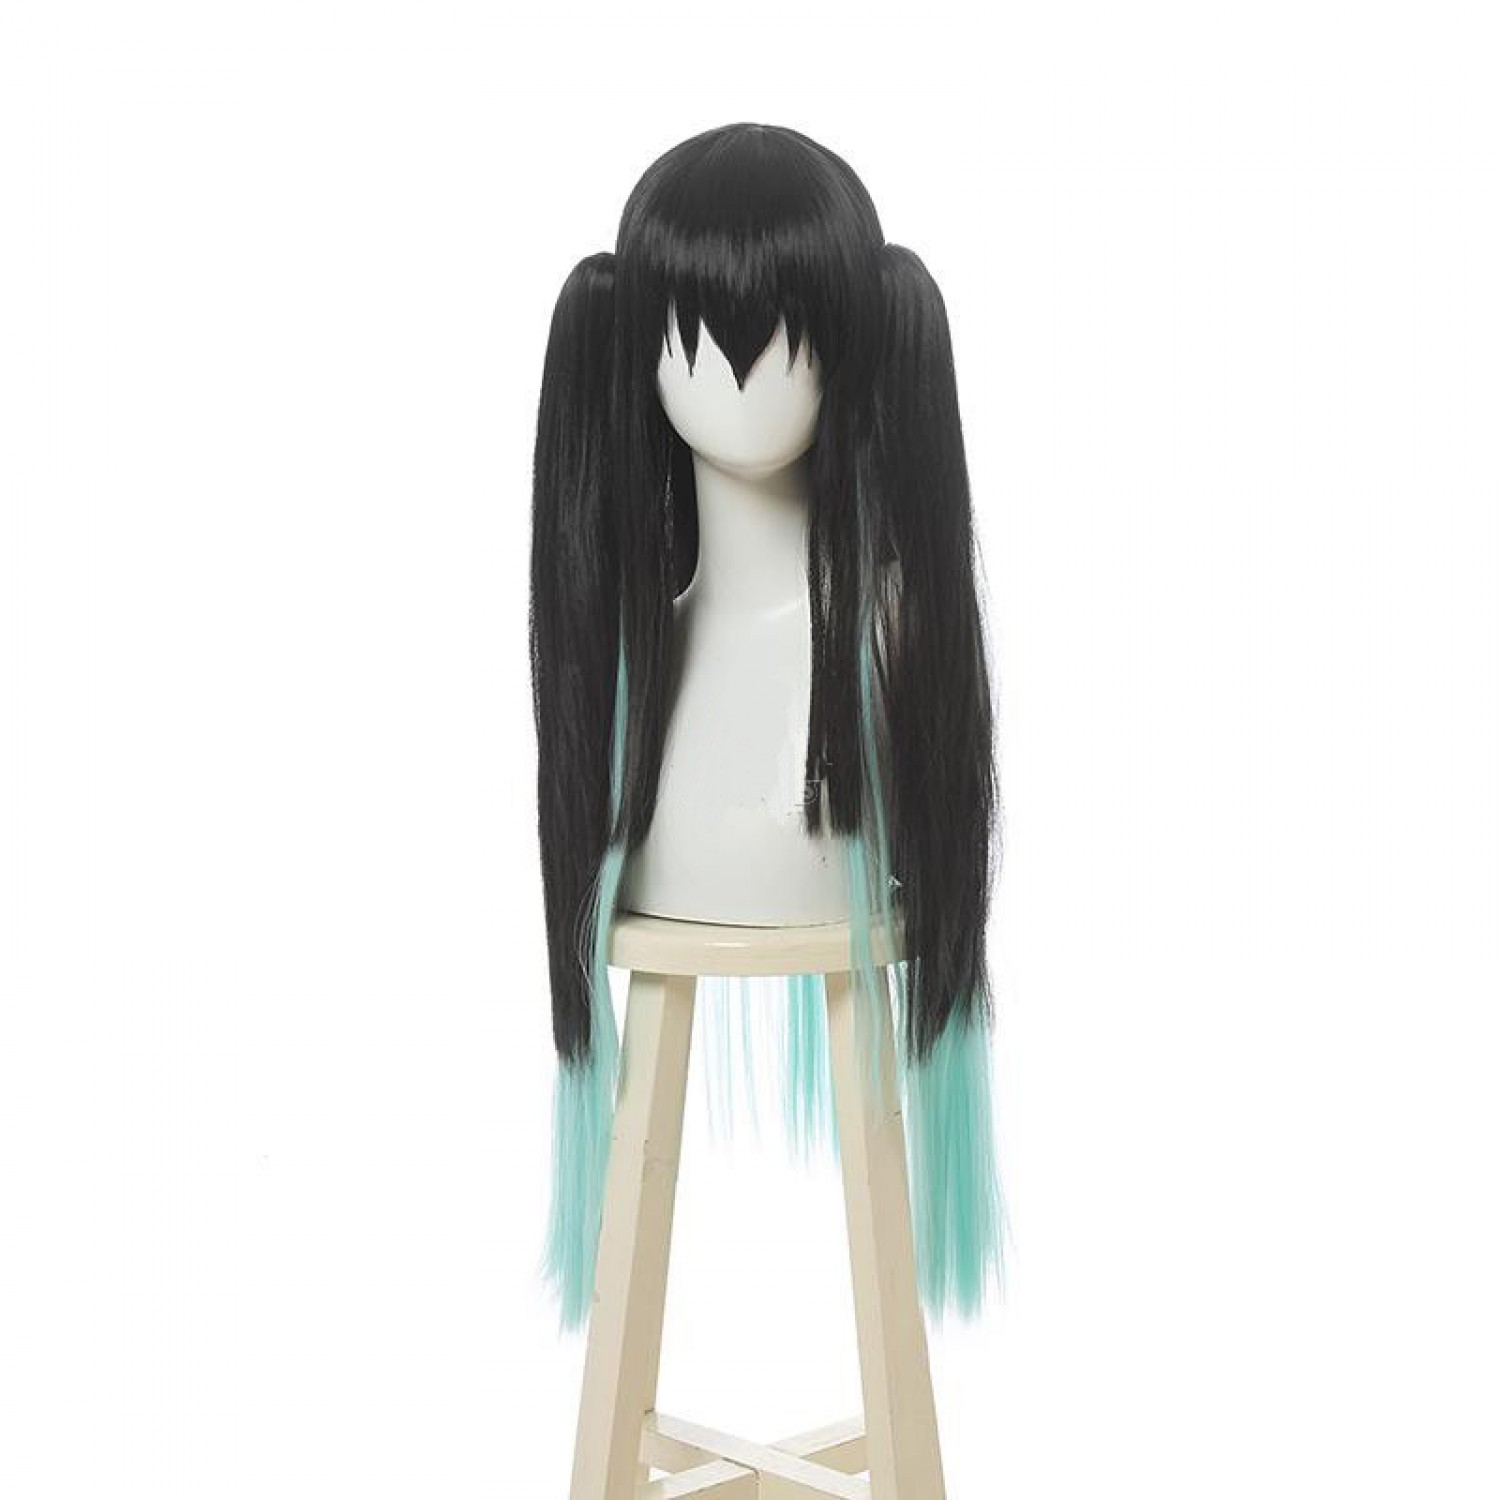 Demon Slayer Antarcticite Green Mixed Black Anime Cosplay Wig